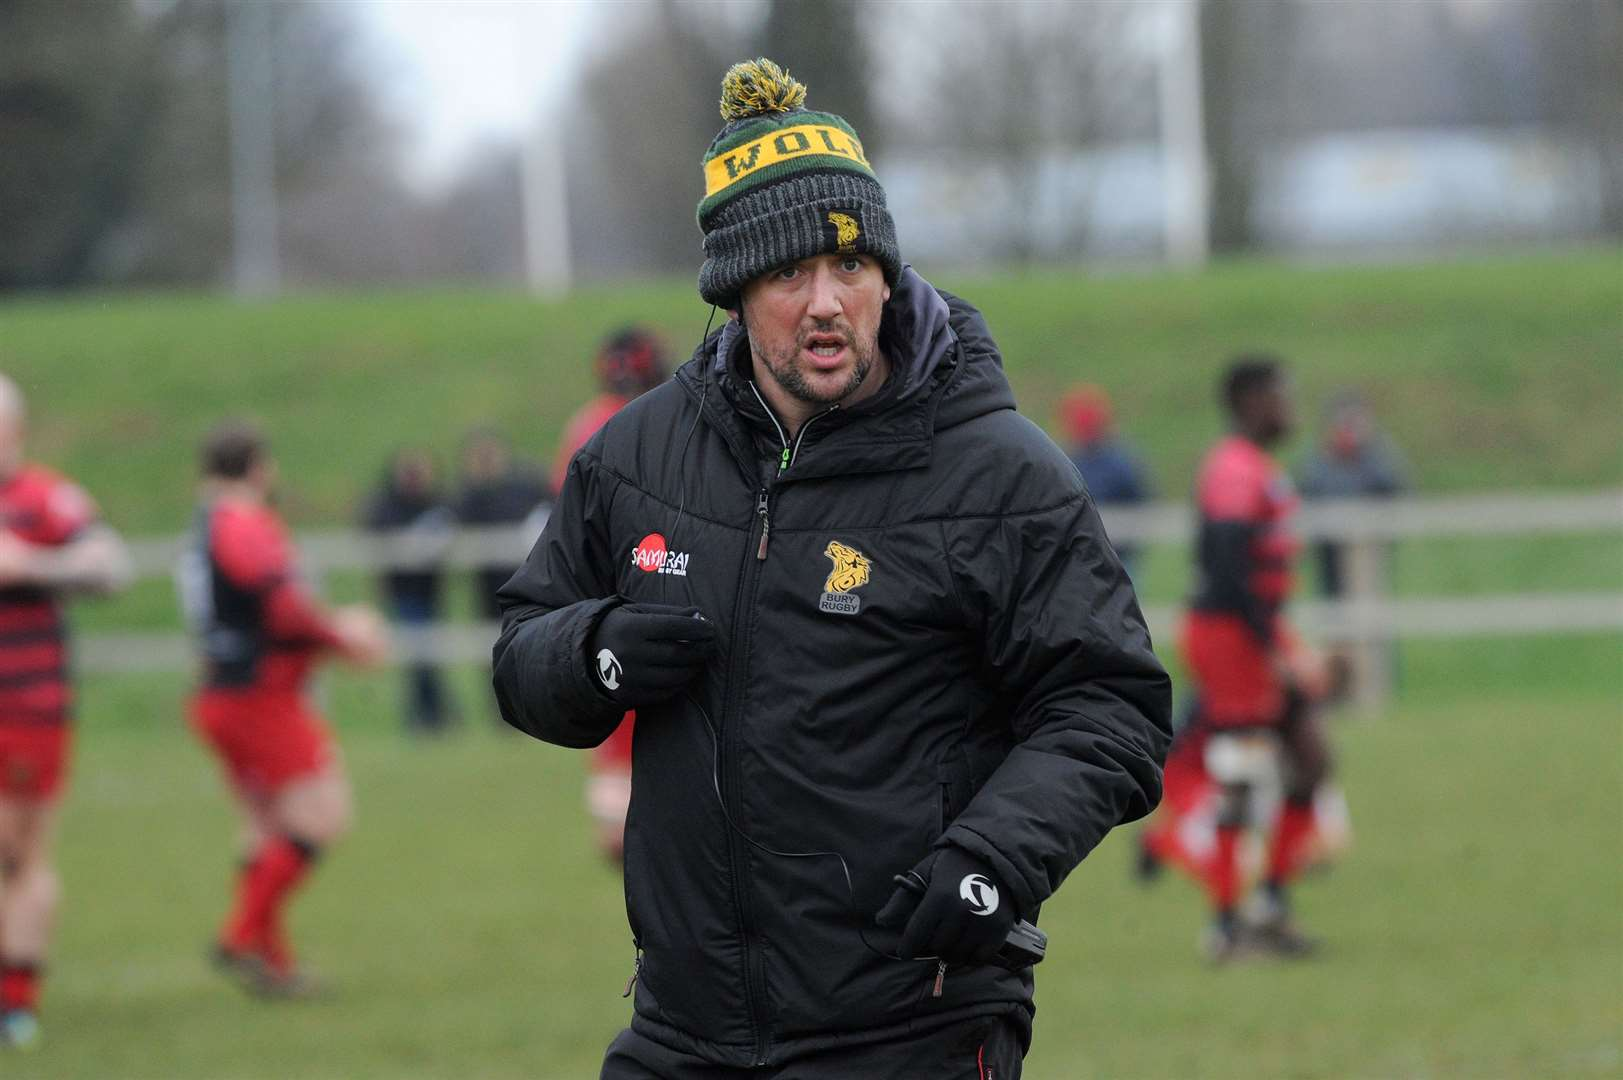 RUGBY - Bury St Edmunds v Old Redcliffians..Pictured: Head Coach Nick Wakley...PICTURE: Mecha Morton. (37687202)